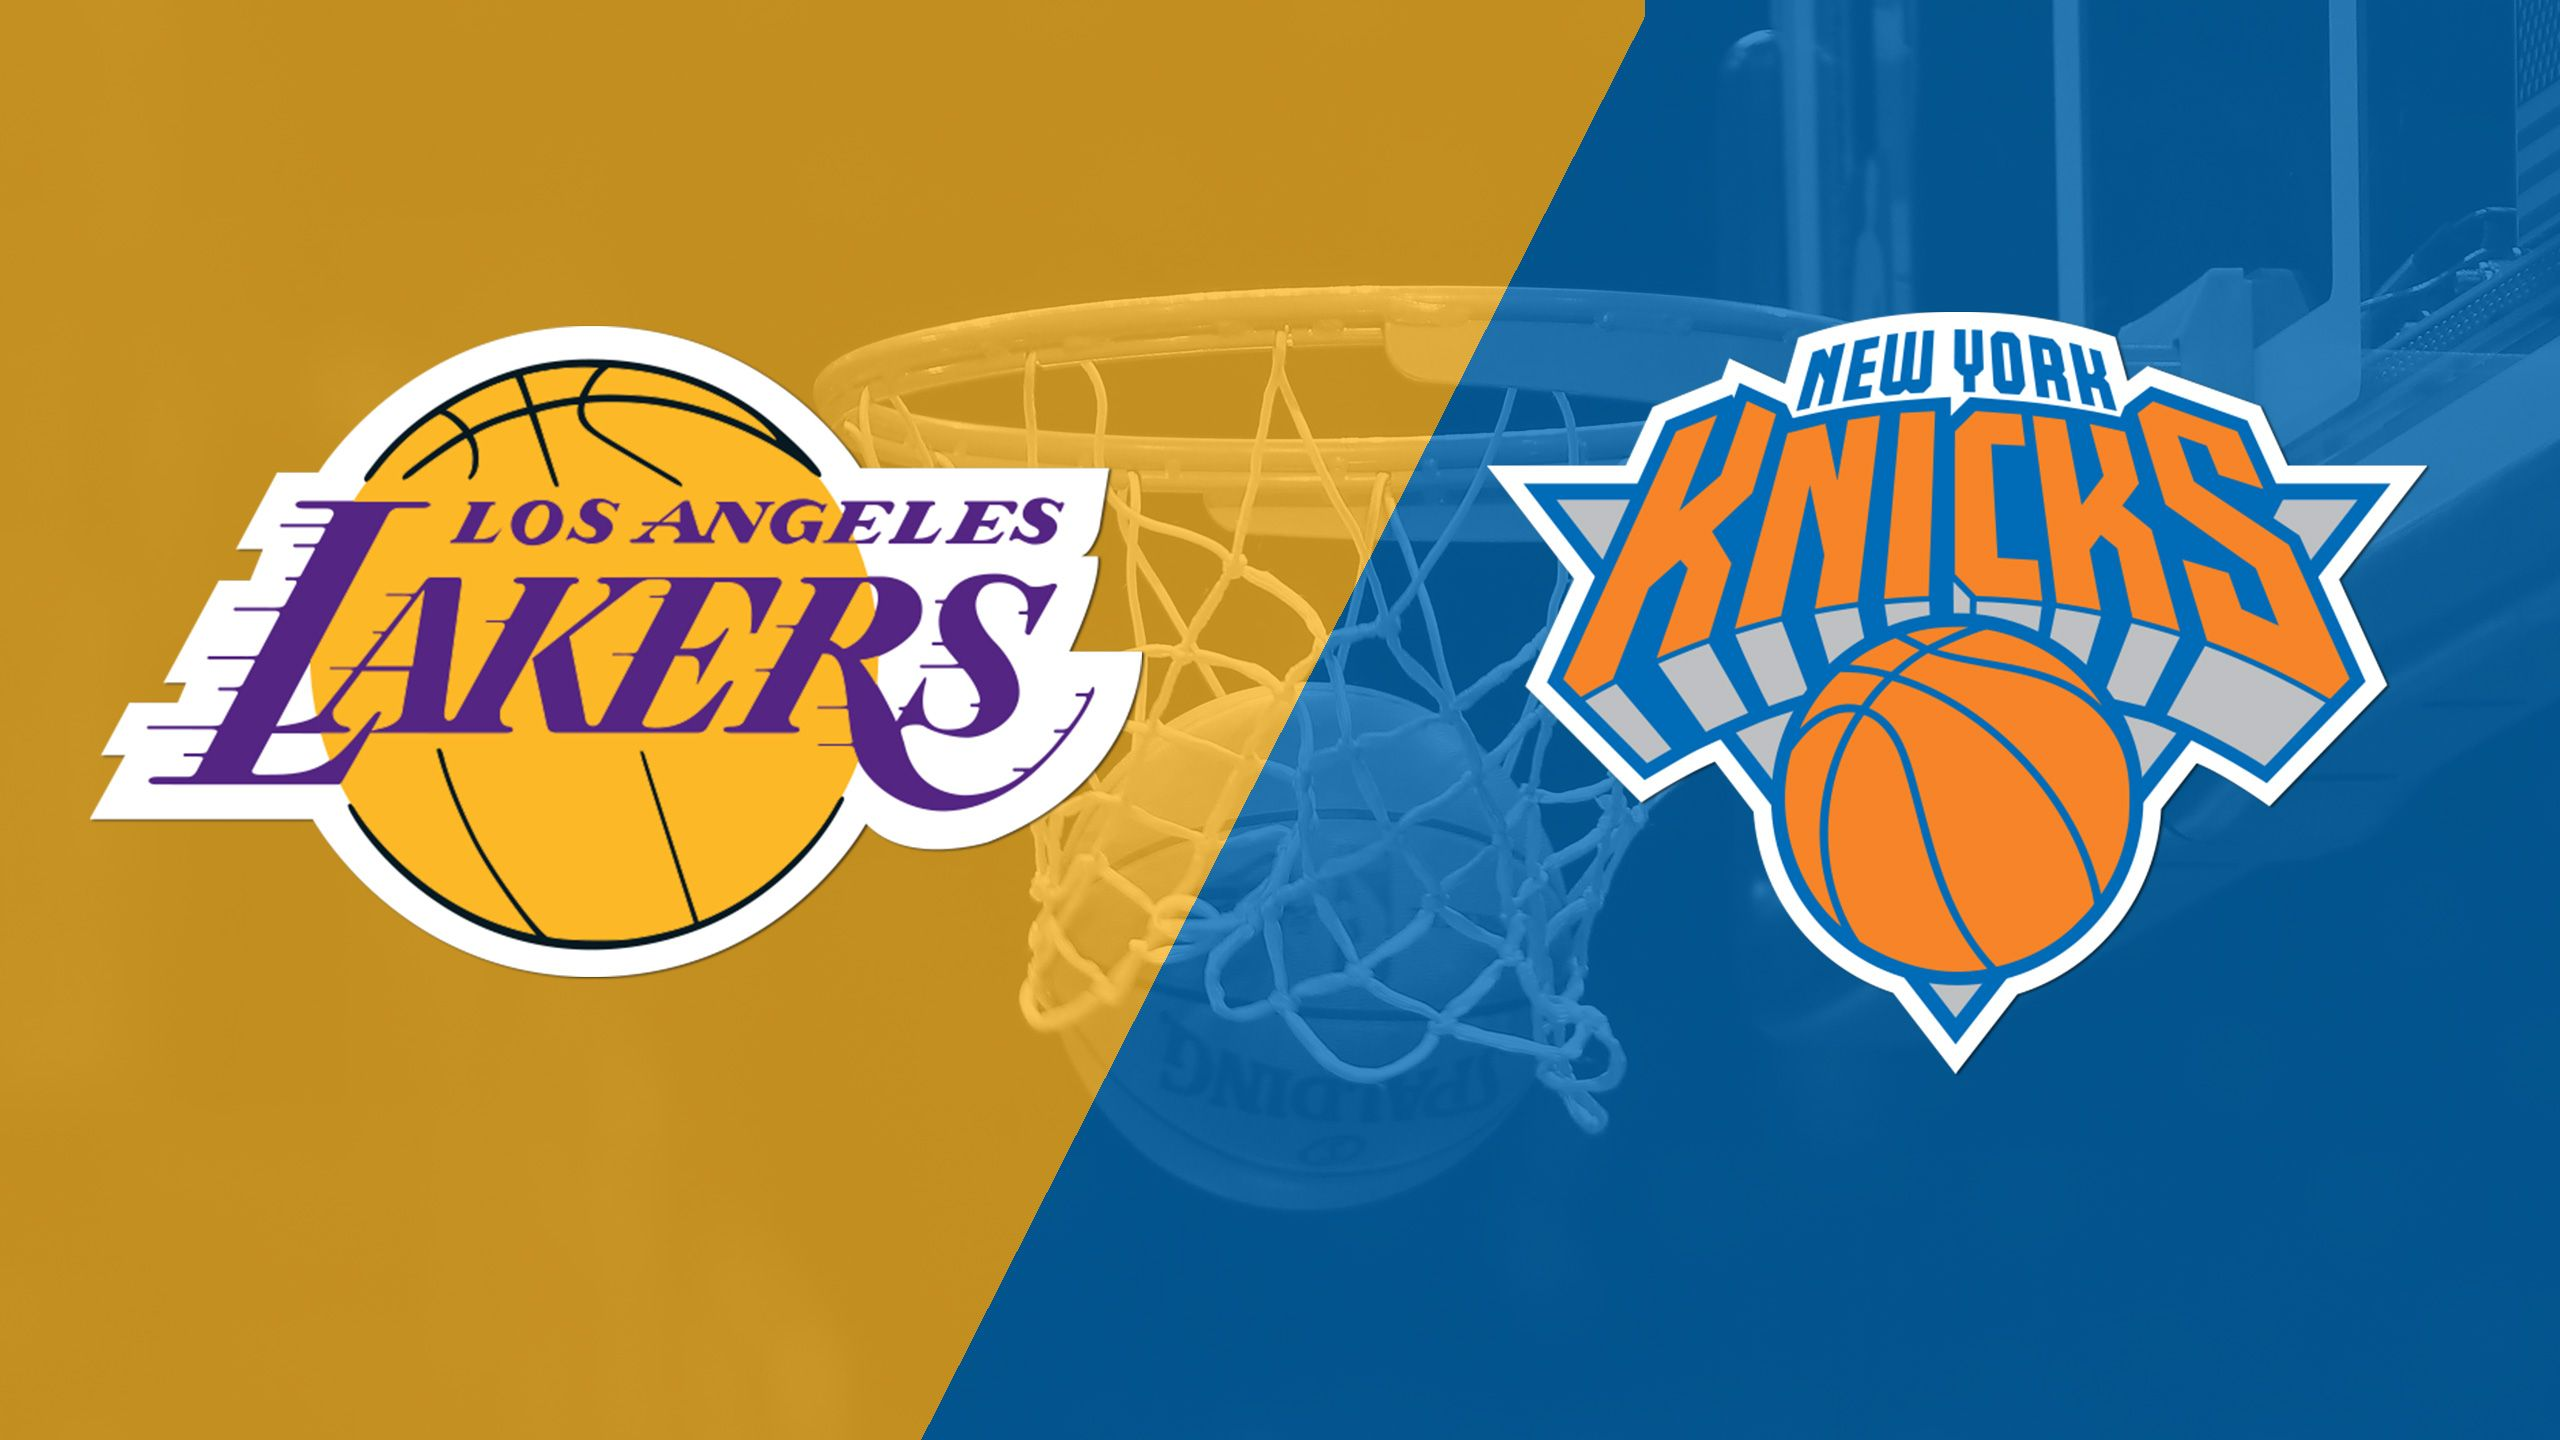 In Spanish - Los Angeles Lakers vs. New York Knicks